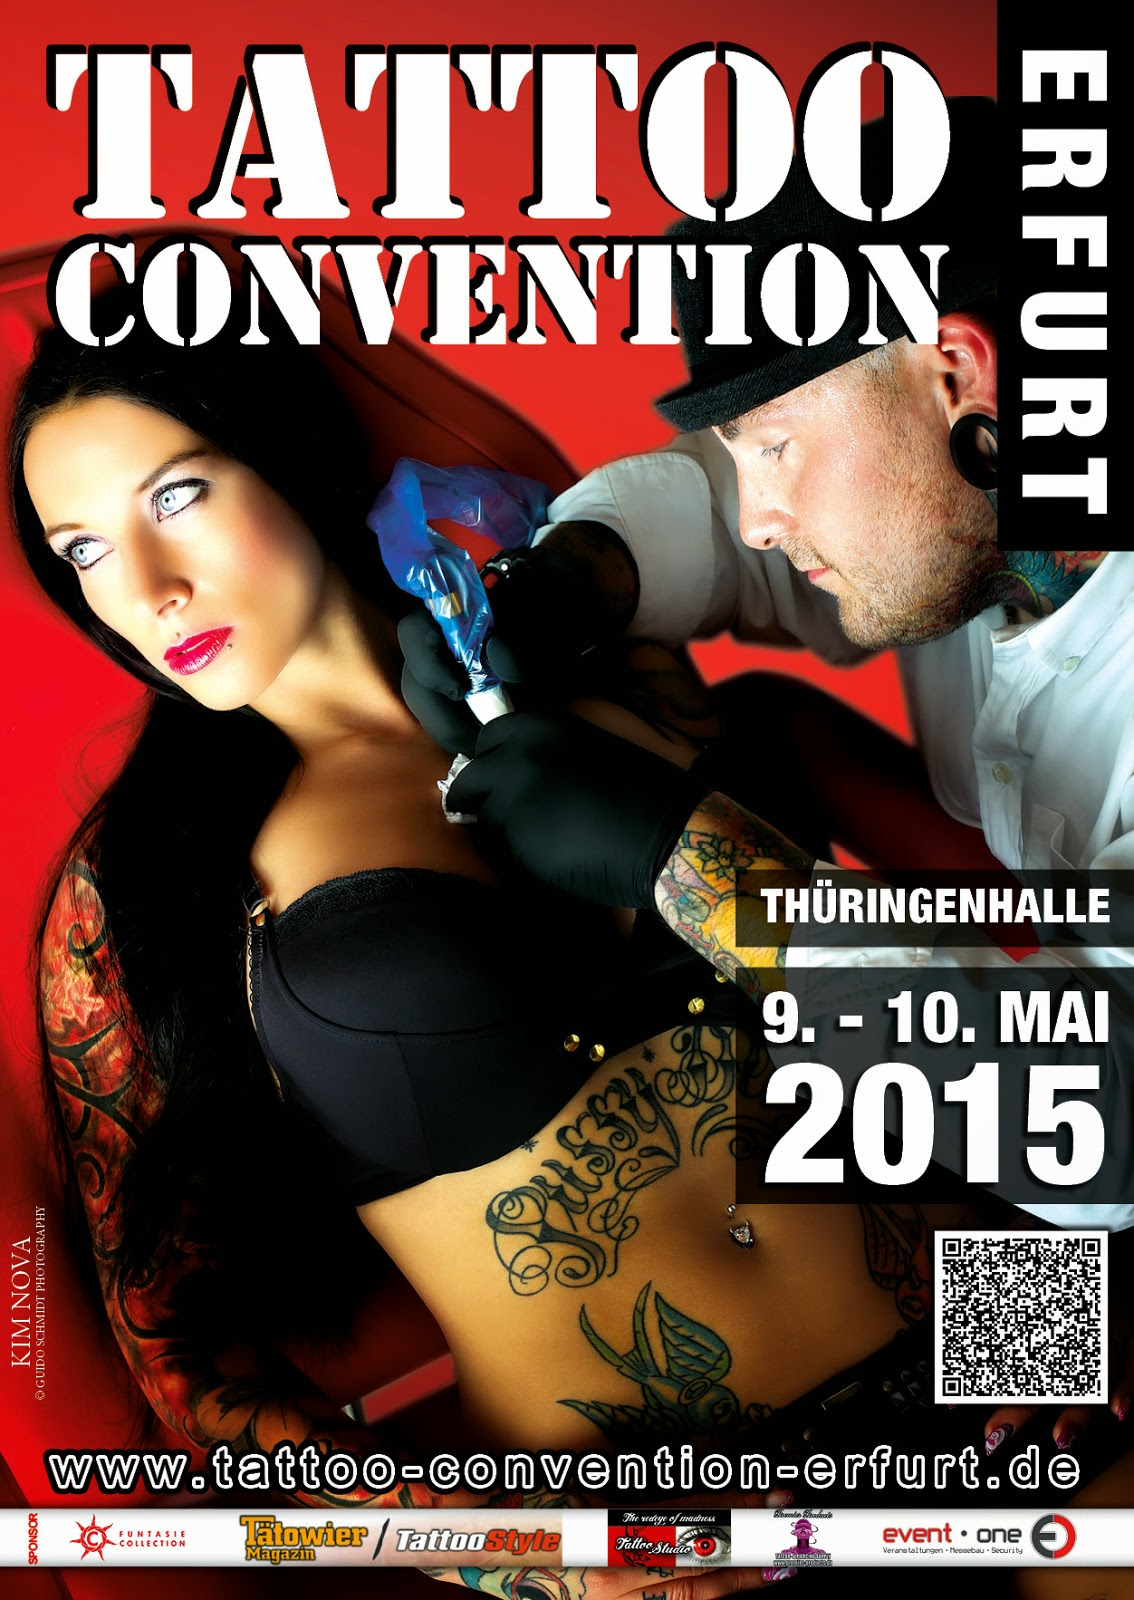 http://www.tattoo-convention-erfurt.de/